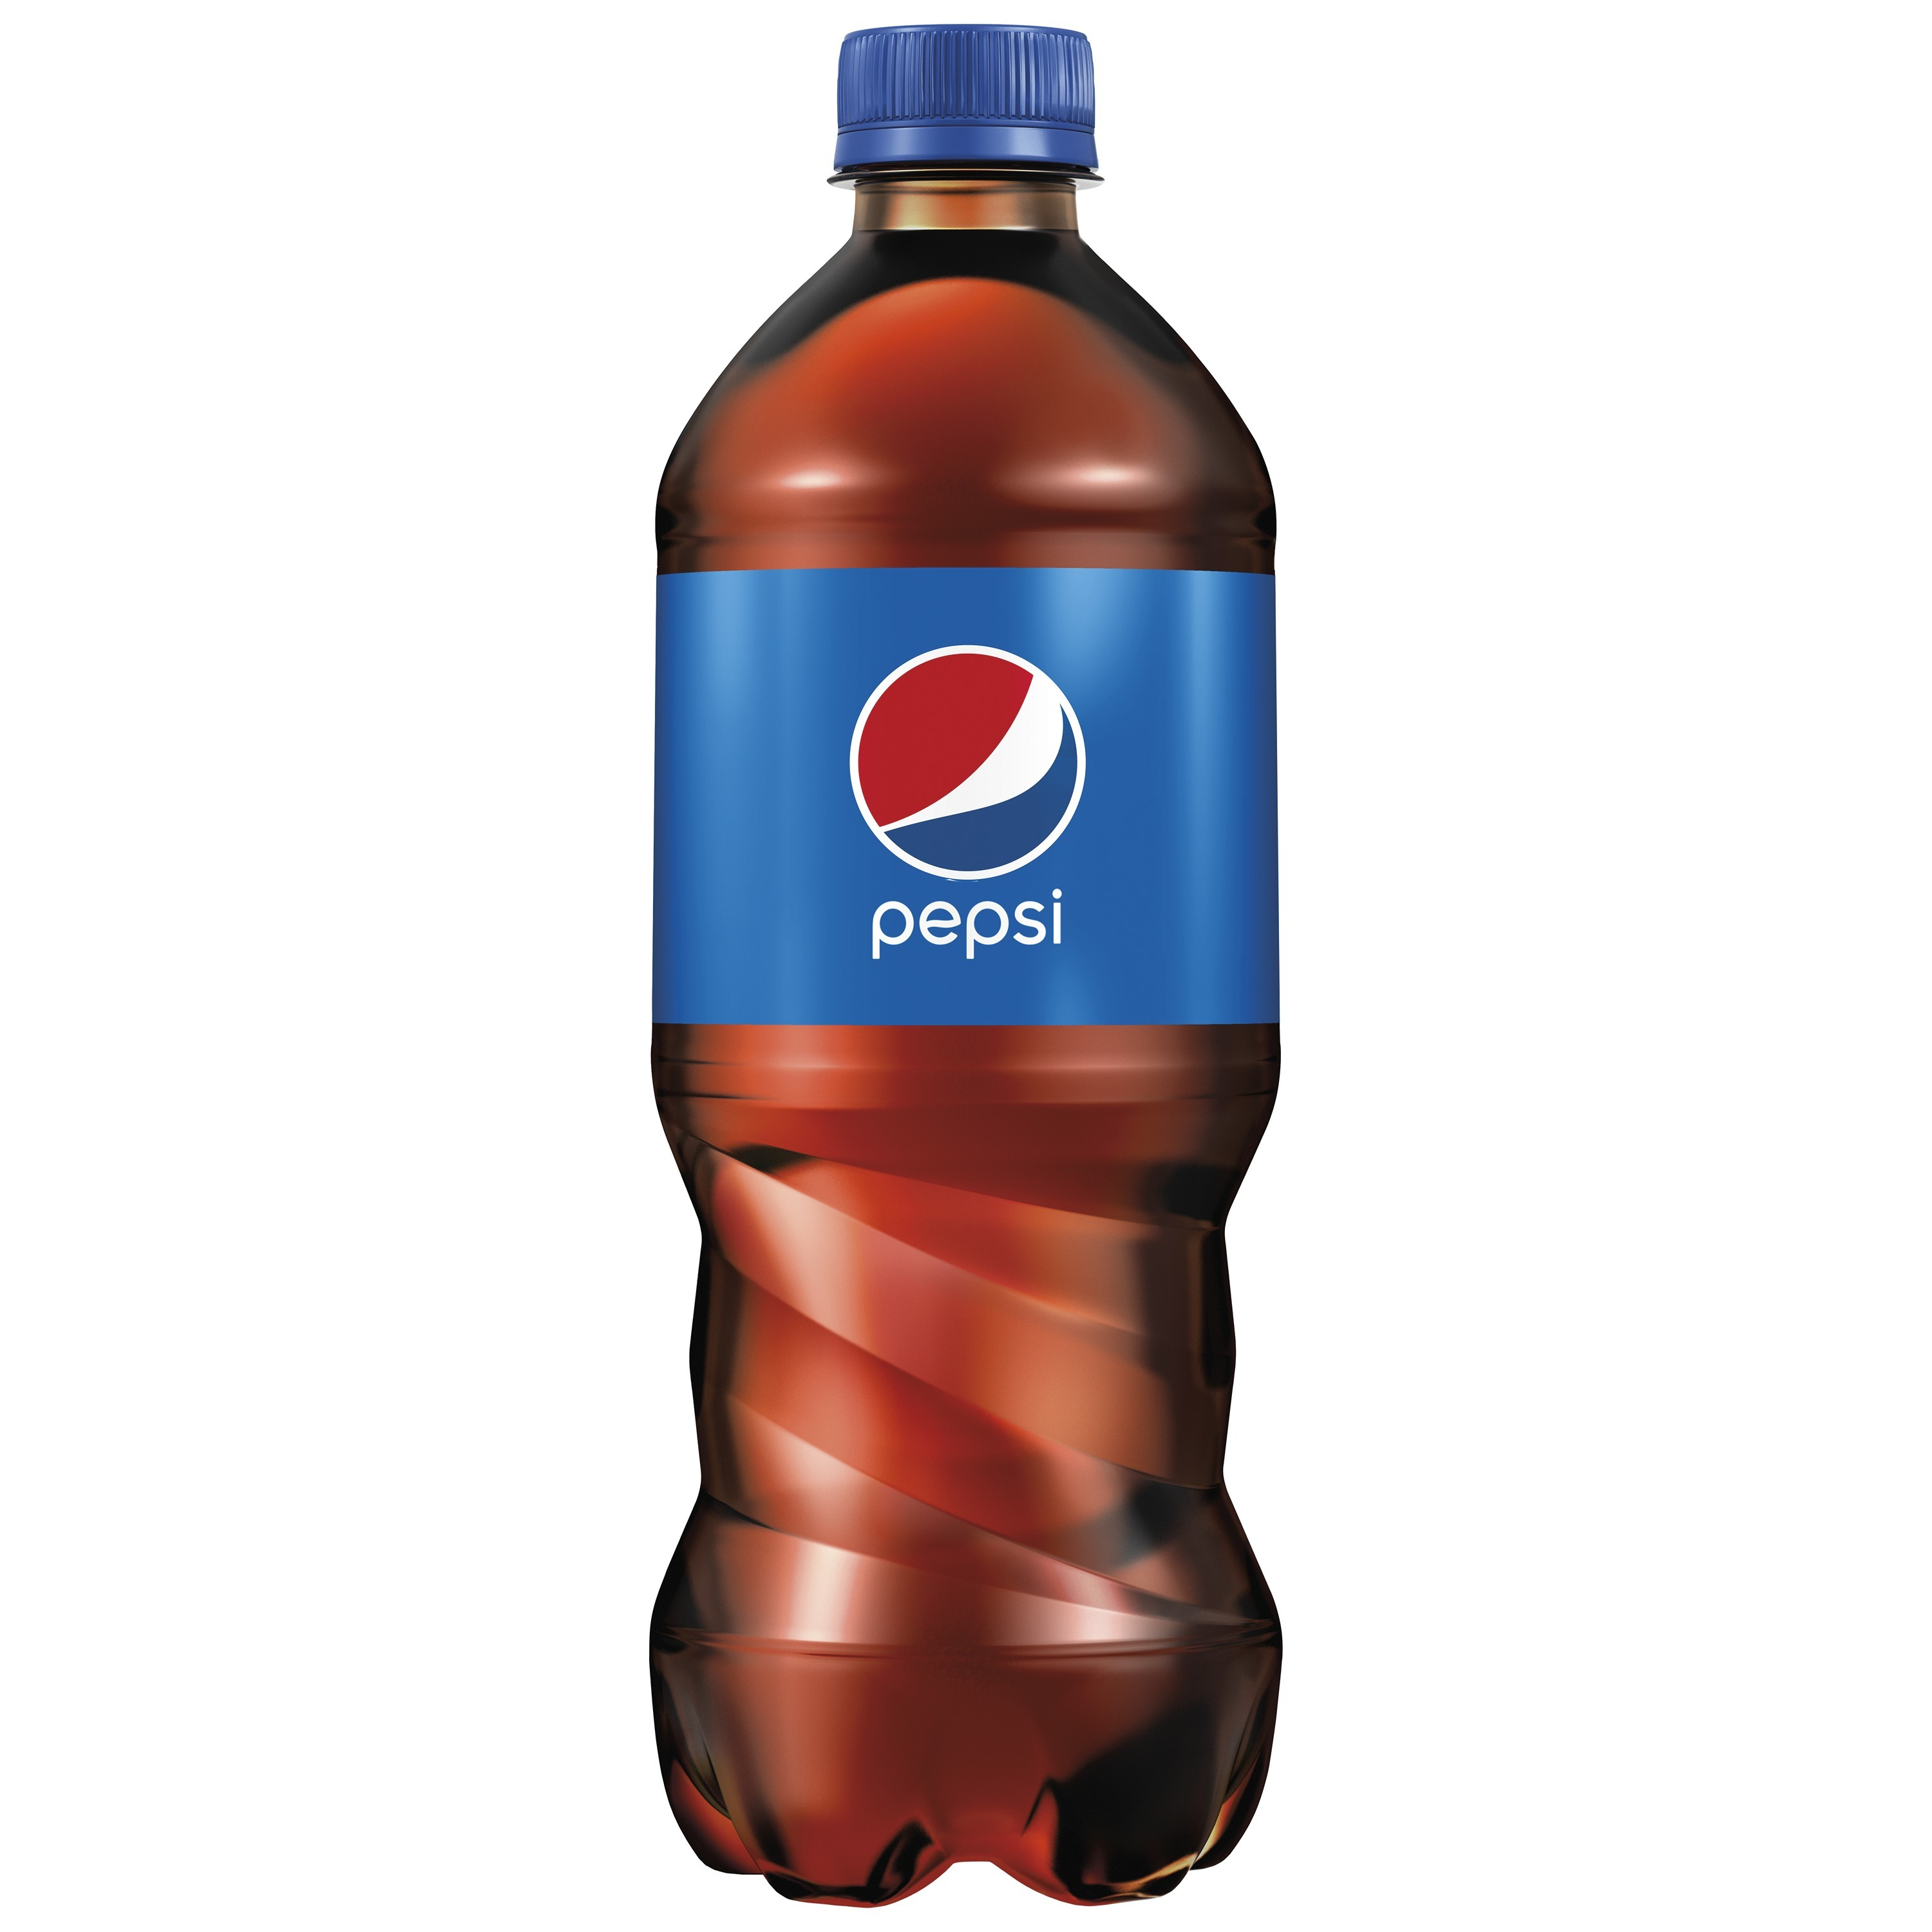 JS Pepsi-Cola Lamp with Shade with Water Drops Background